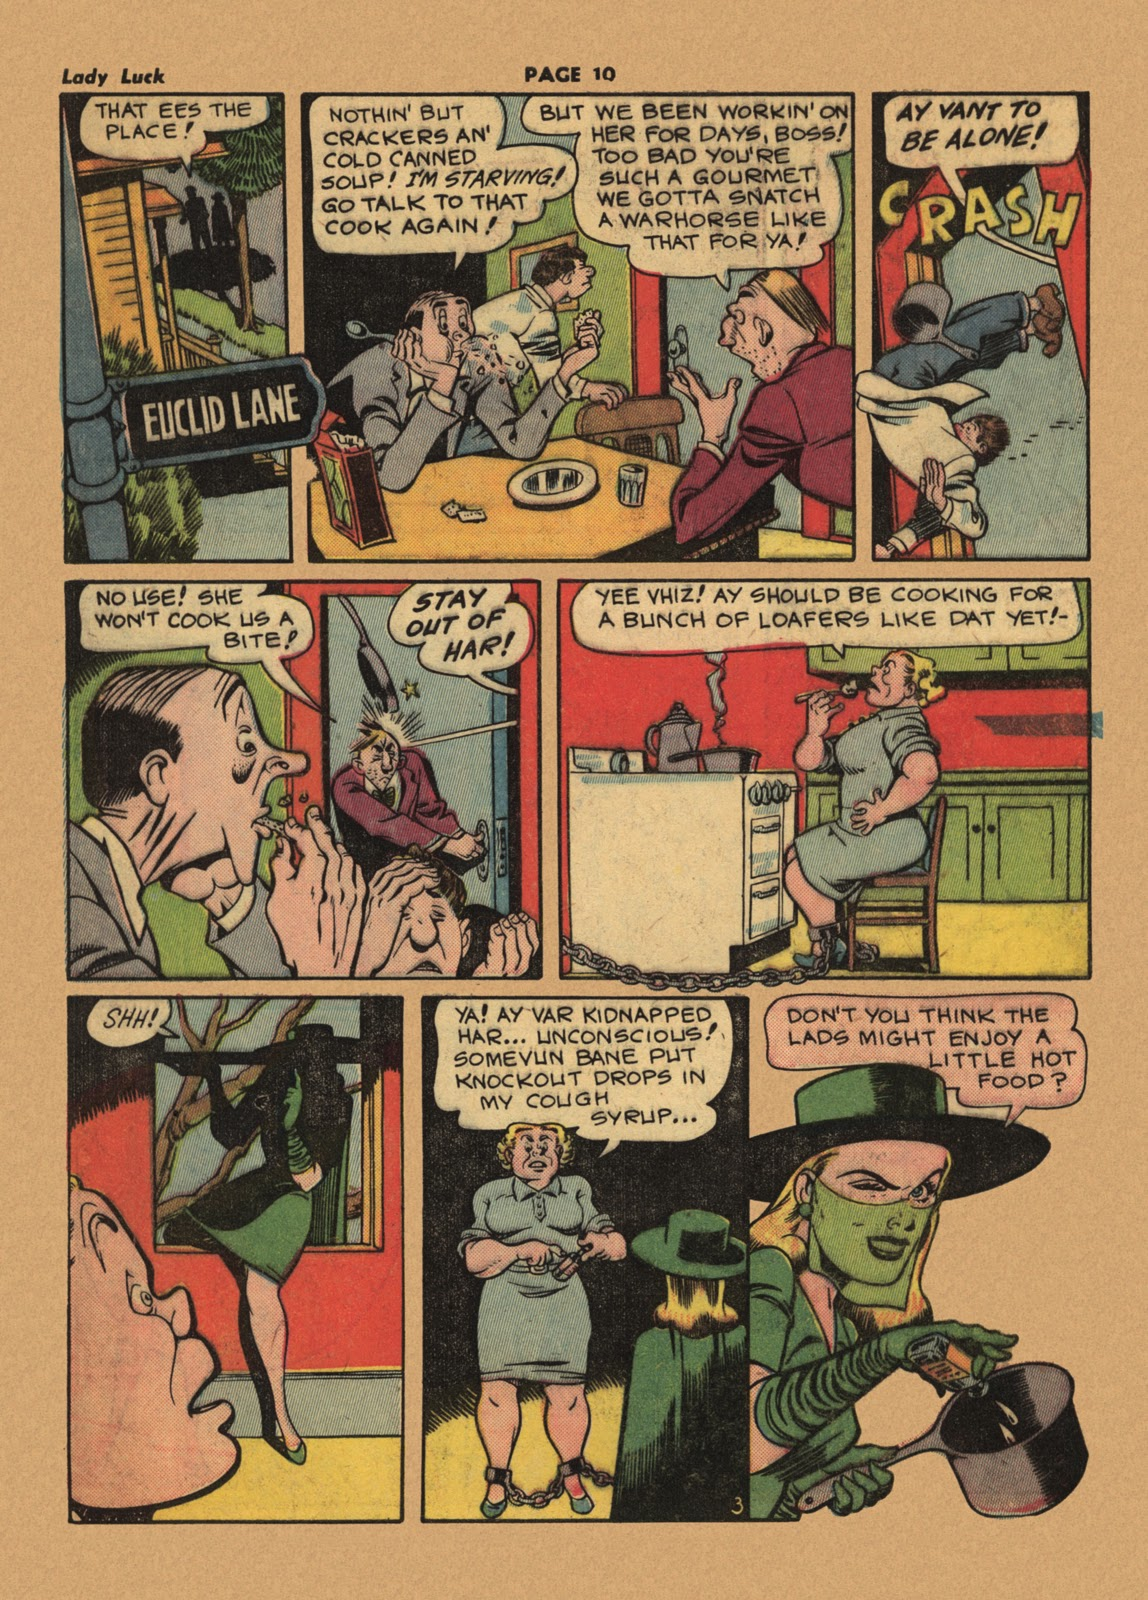 Read and download free comic online, largest website have more than 10 million image updated daily. The Fabuleous Fifties